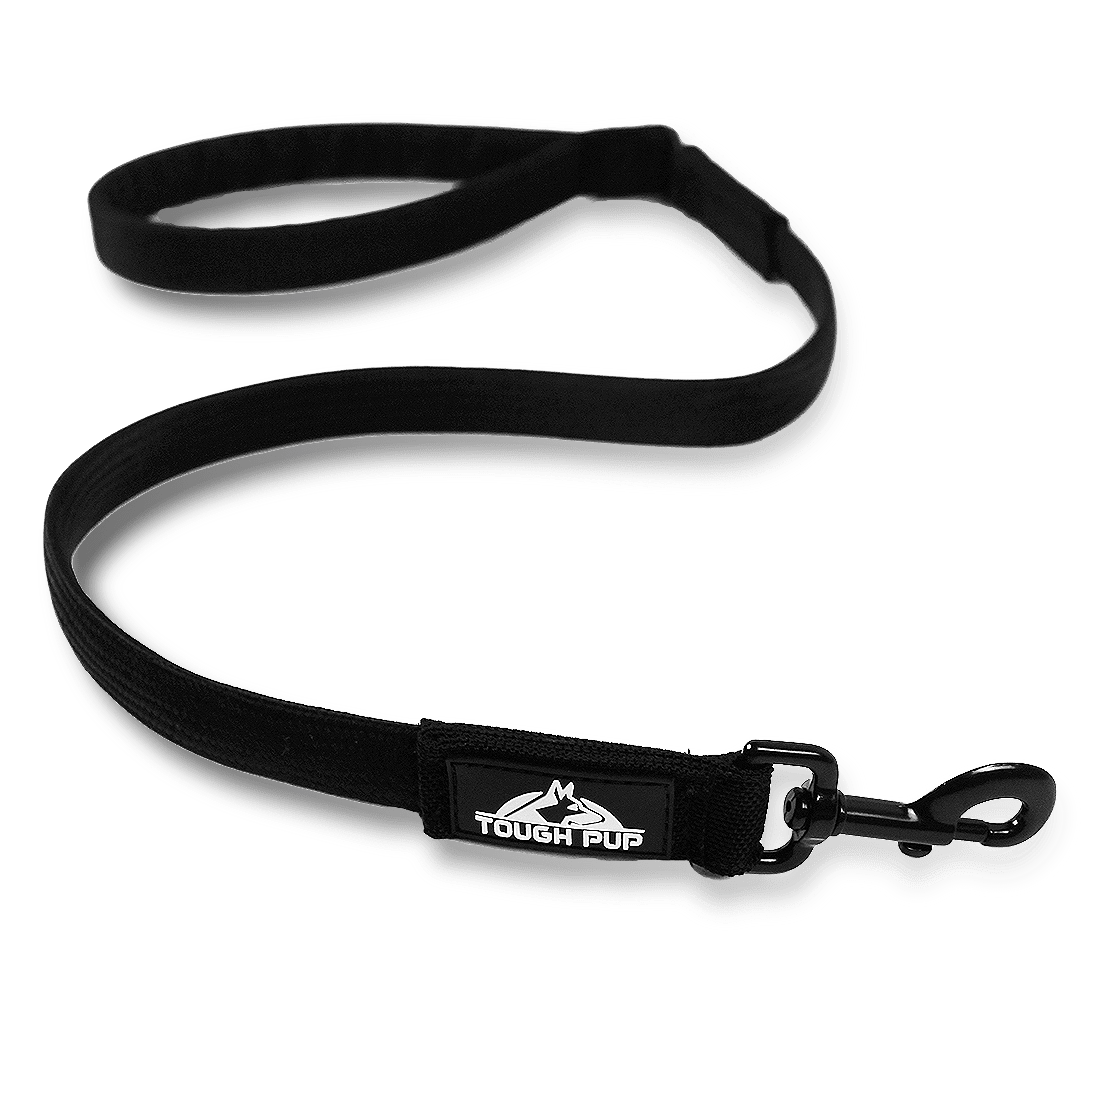 Freedom Flex Tactical Dog Leash (anti-pull)